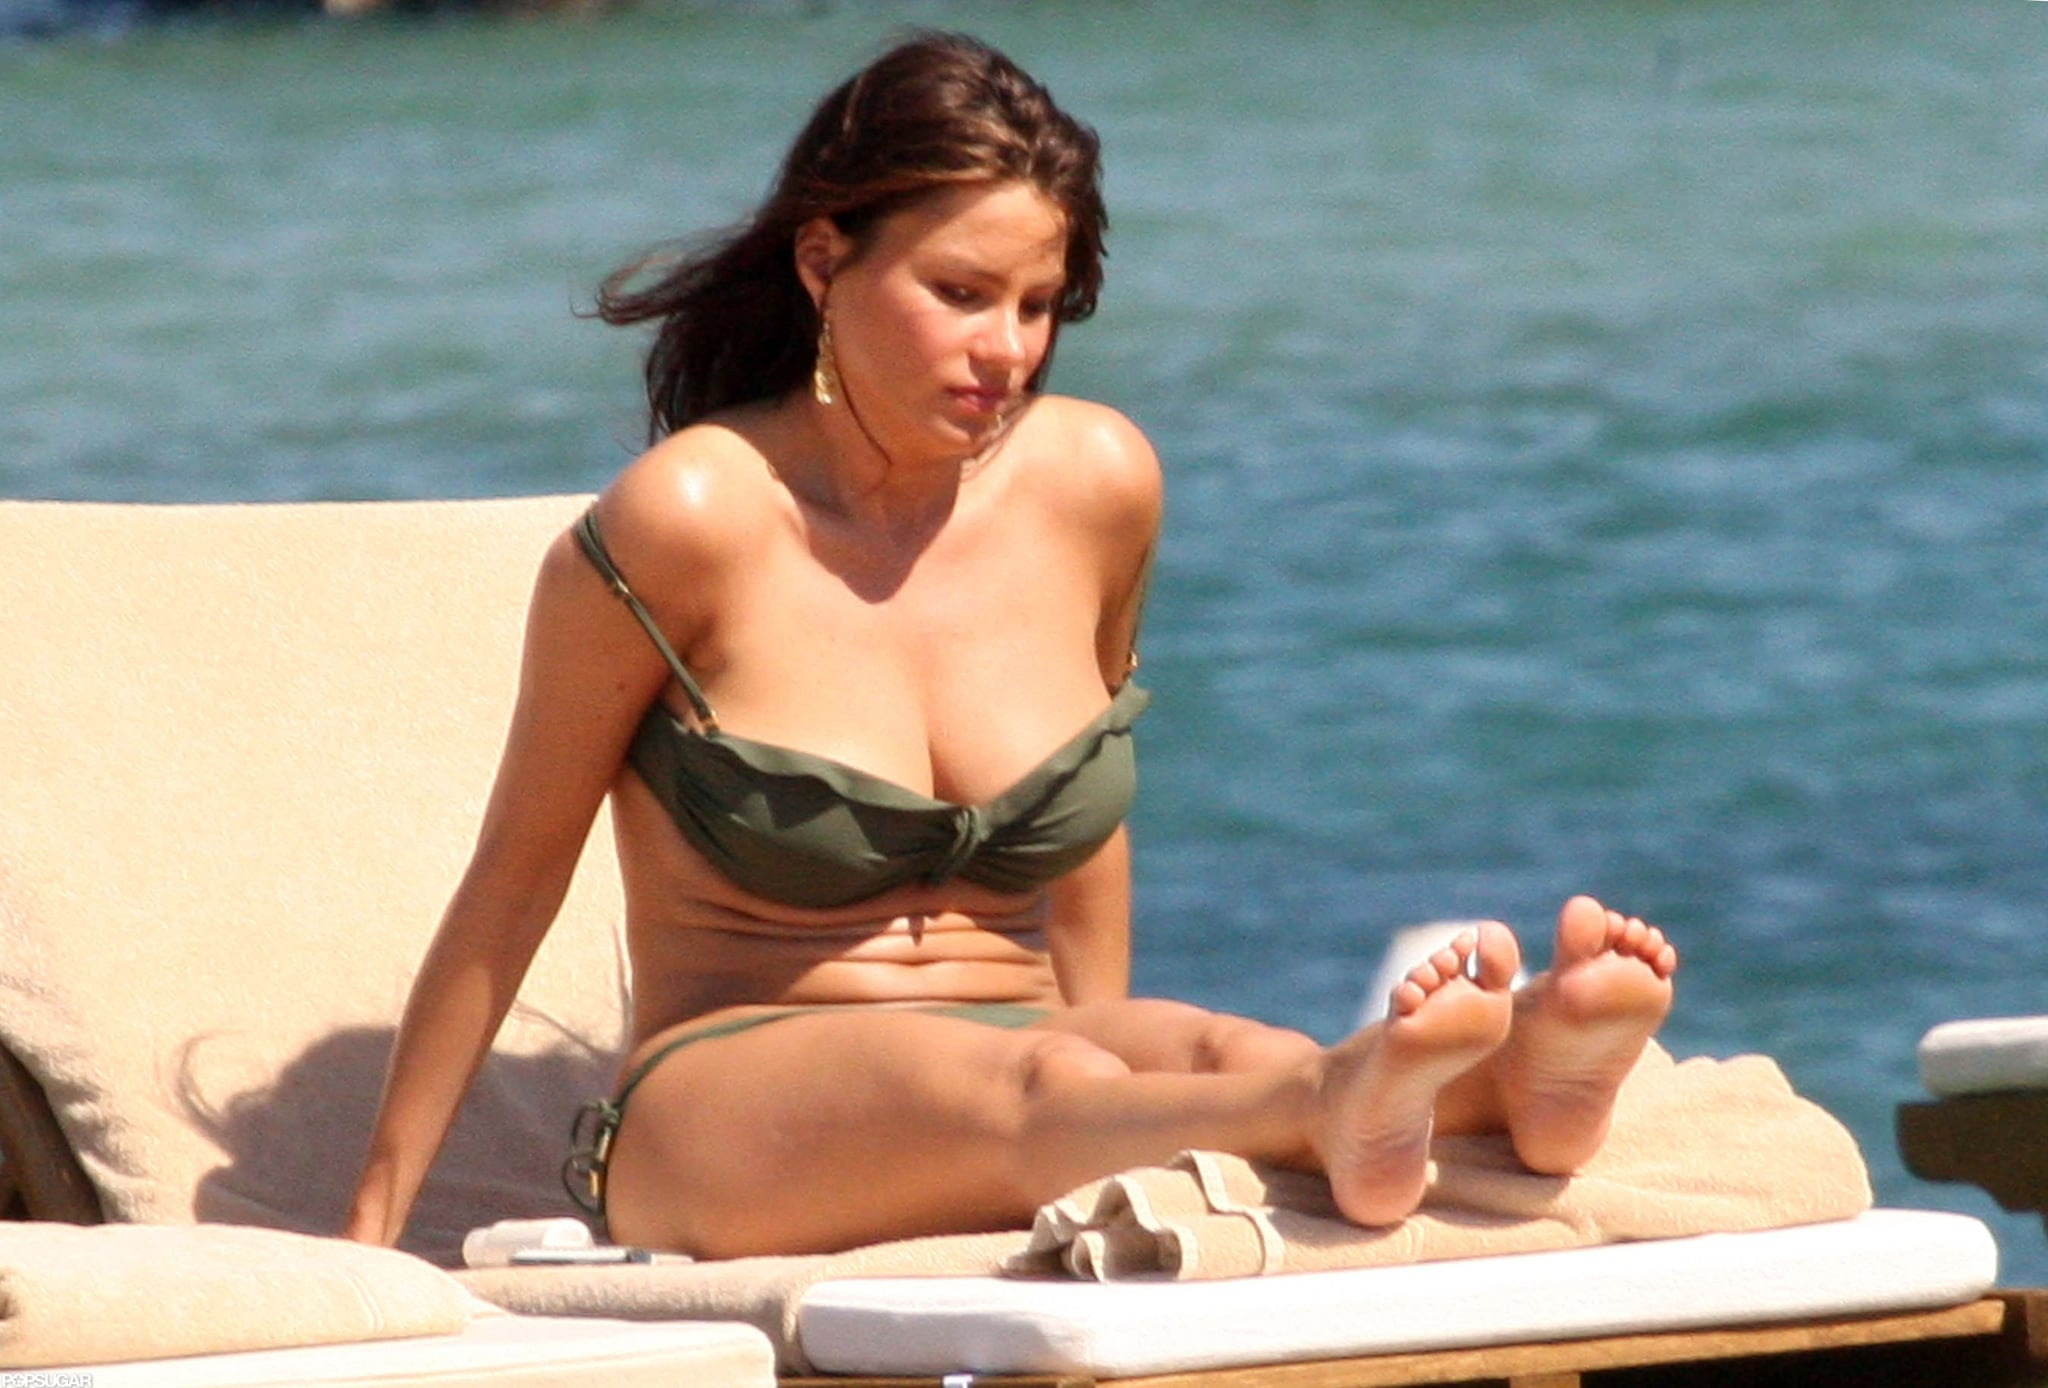 Sofia worked on her tan in Porto Cervo in July 2010.